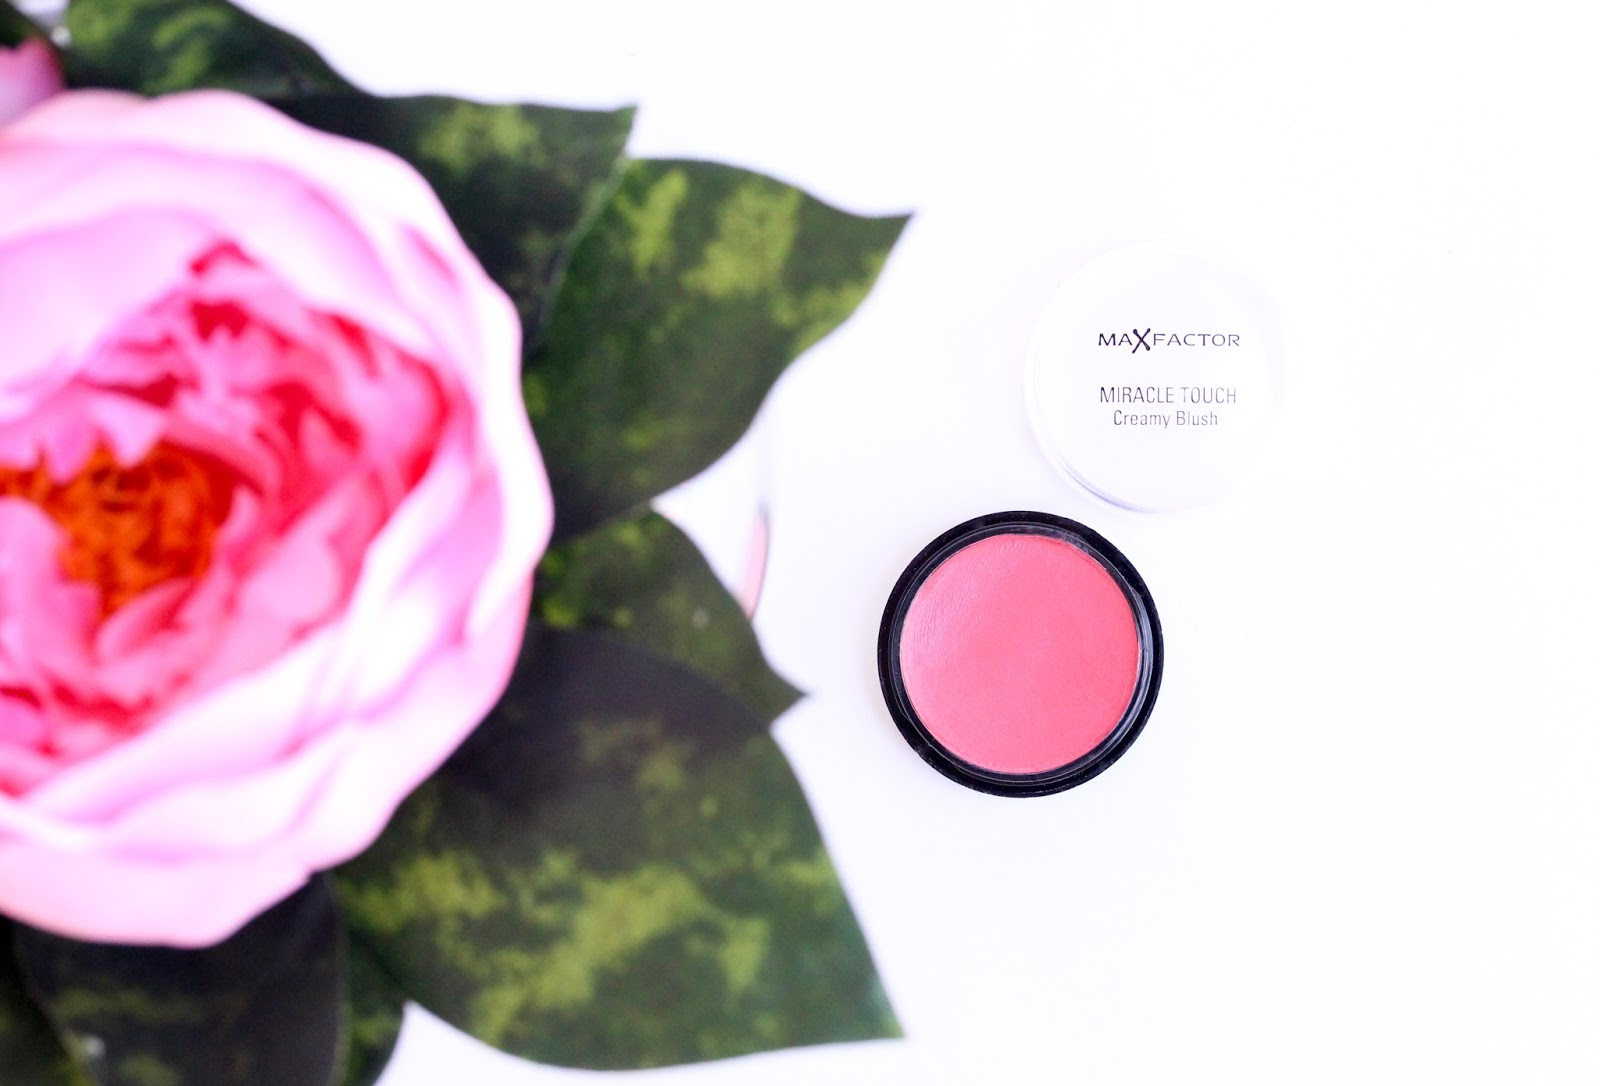 Maxfactor Miracle Touch Creamy Blush in Soft Pink